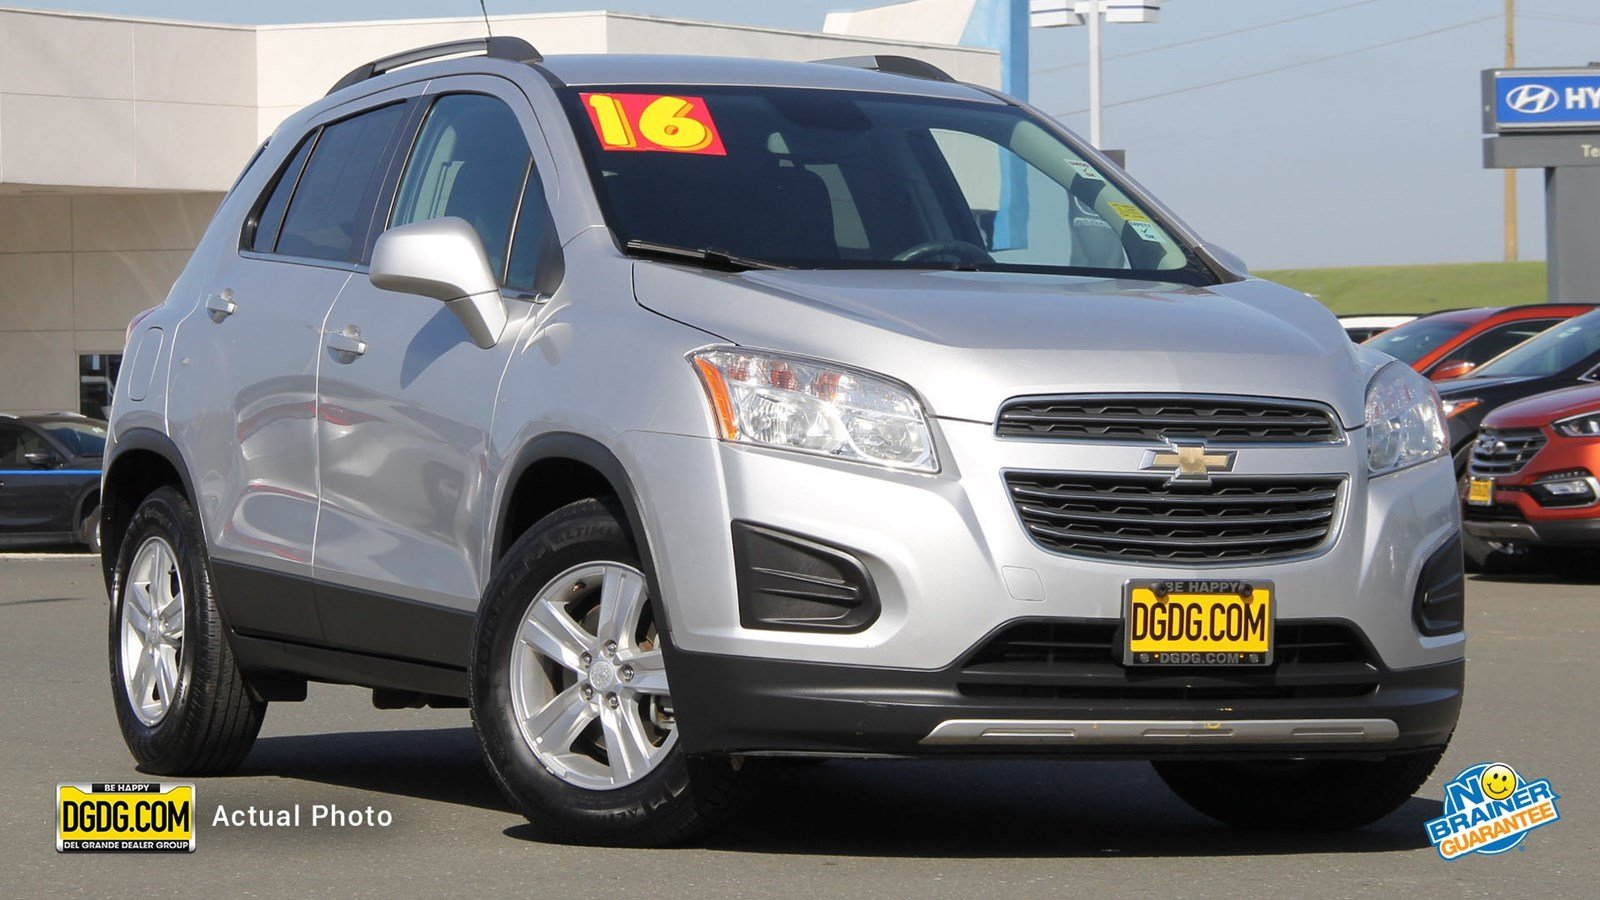 Pre-Owned 2016 Chevrolet Trax LT Sport Utility in Vallejo #UPR10982X